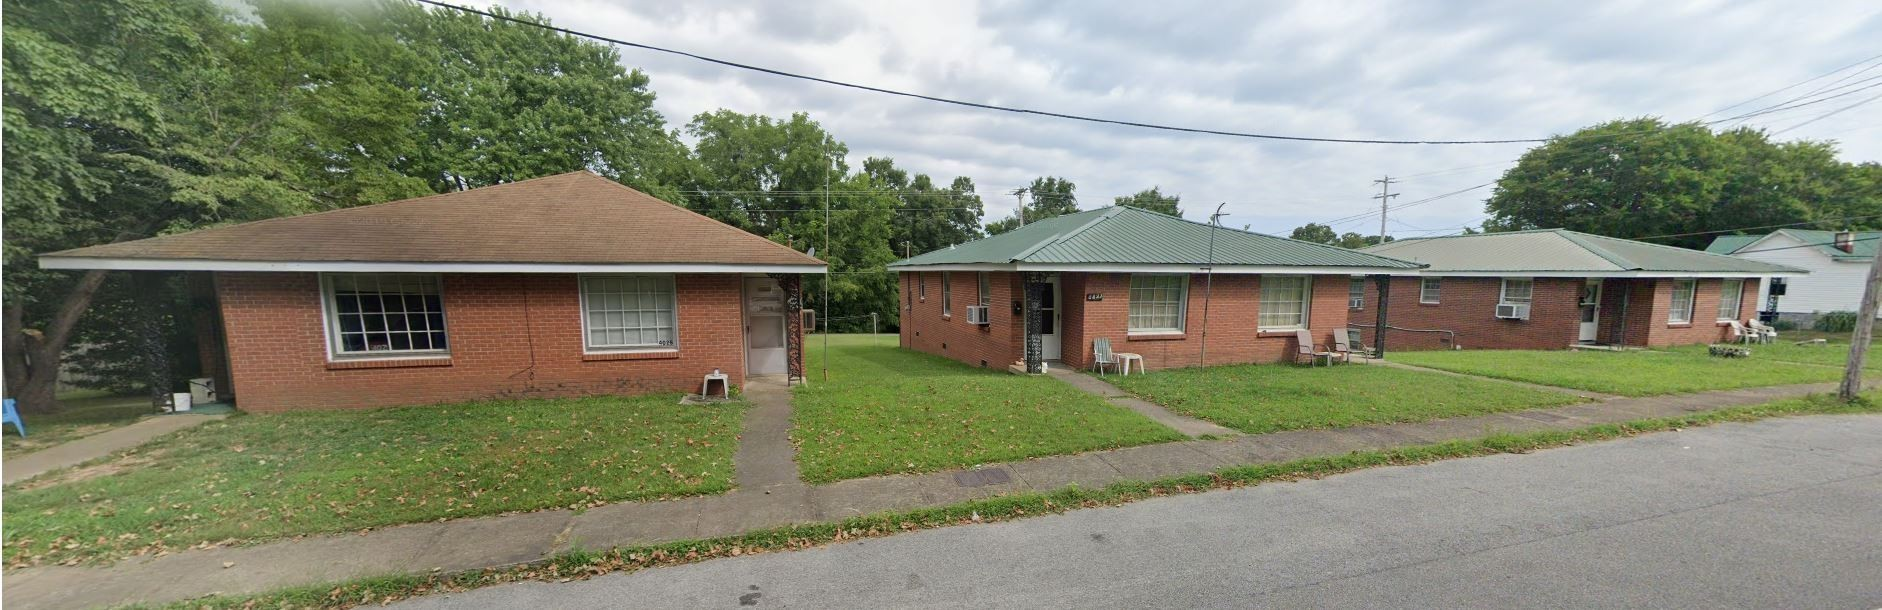 406 N Main St Property Photo - Dickson, TN real estate listing